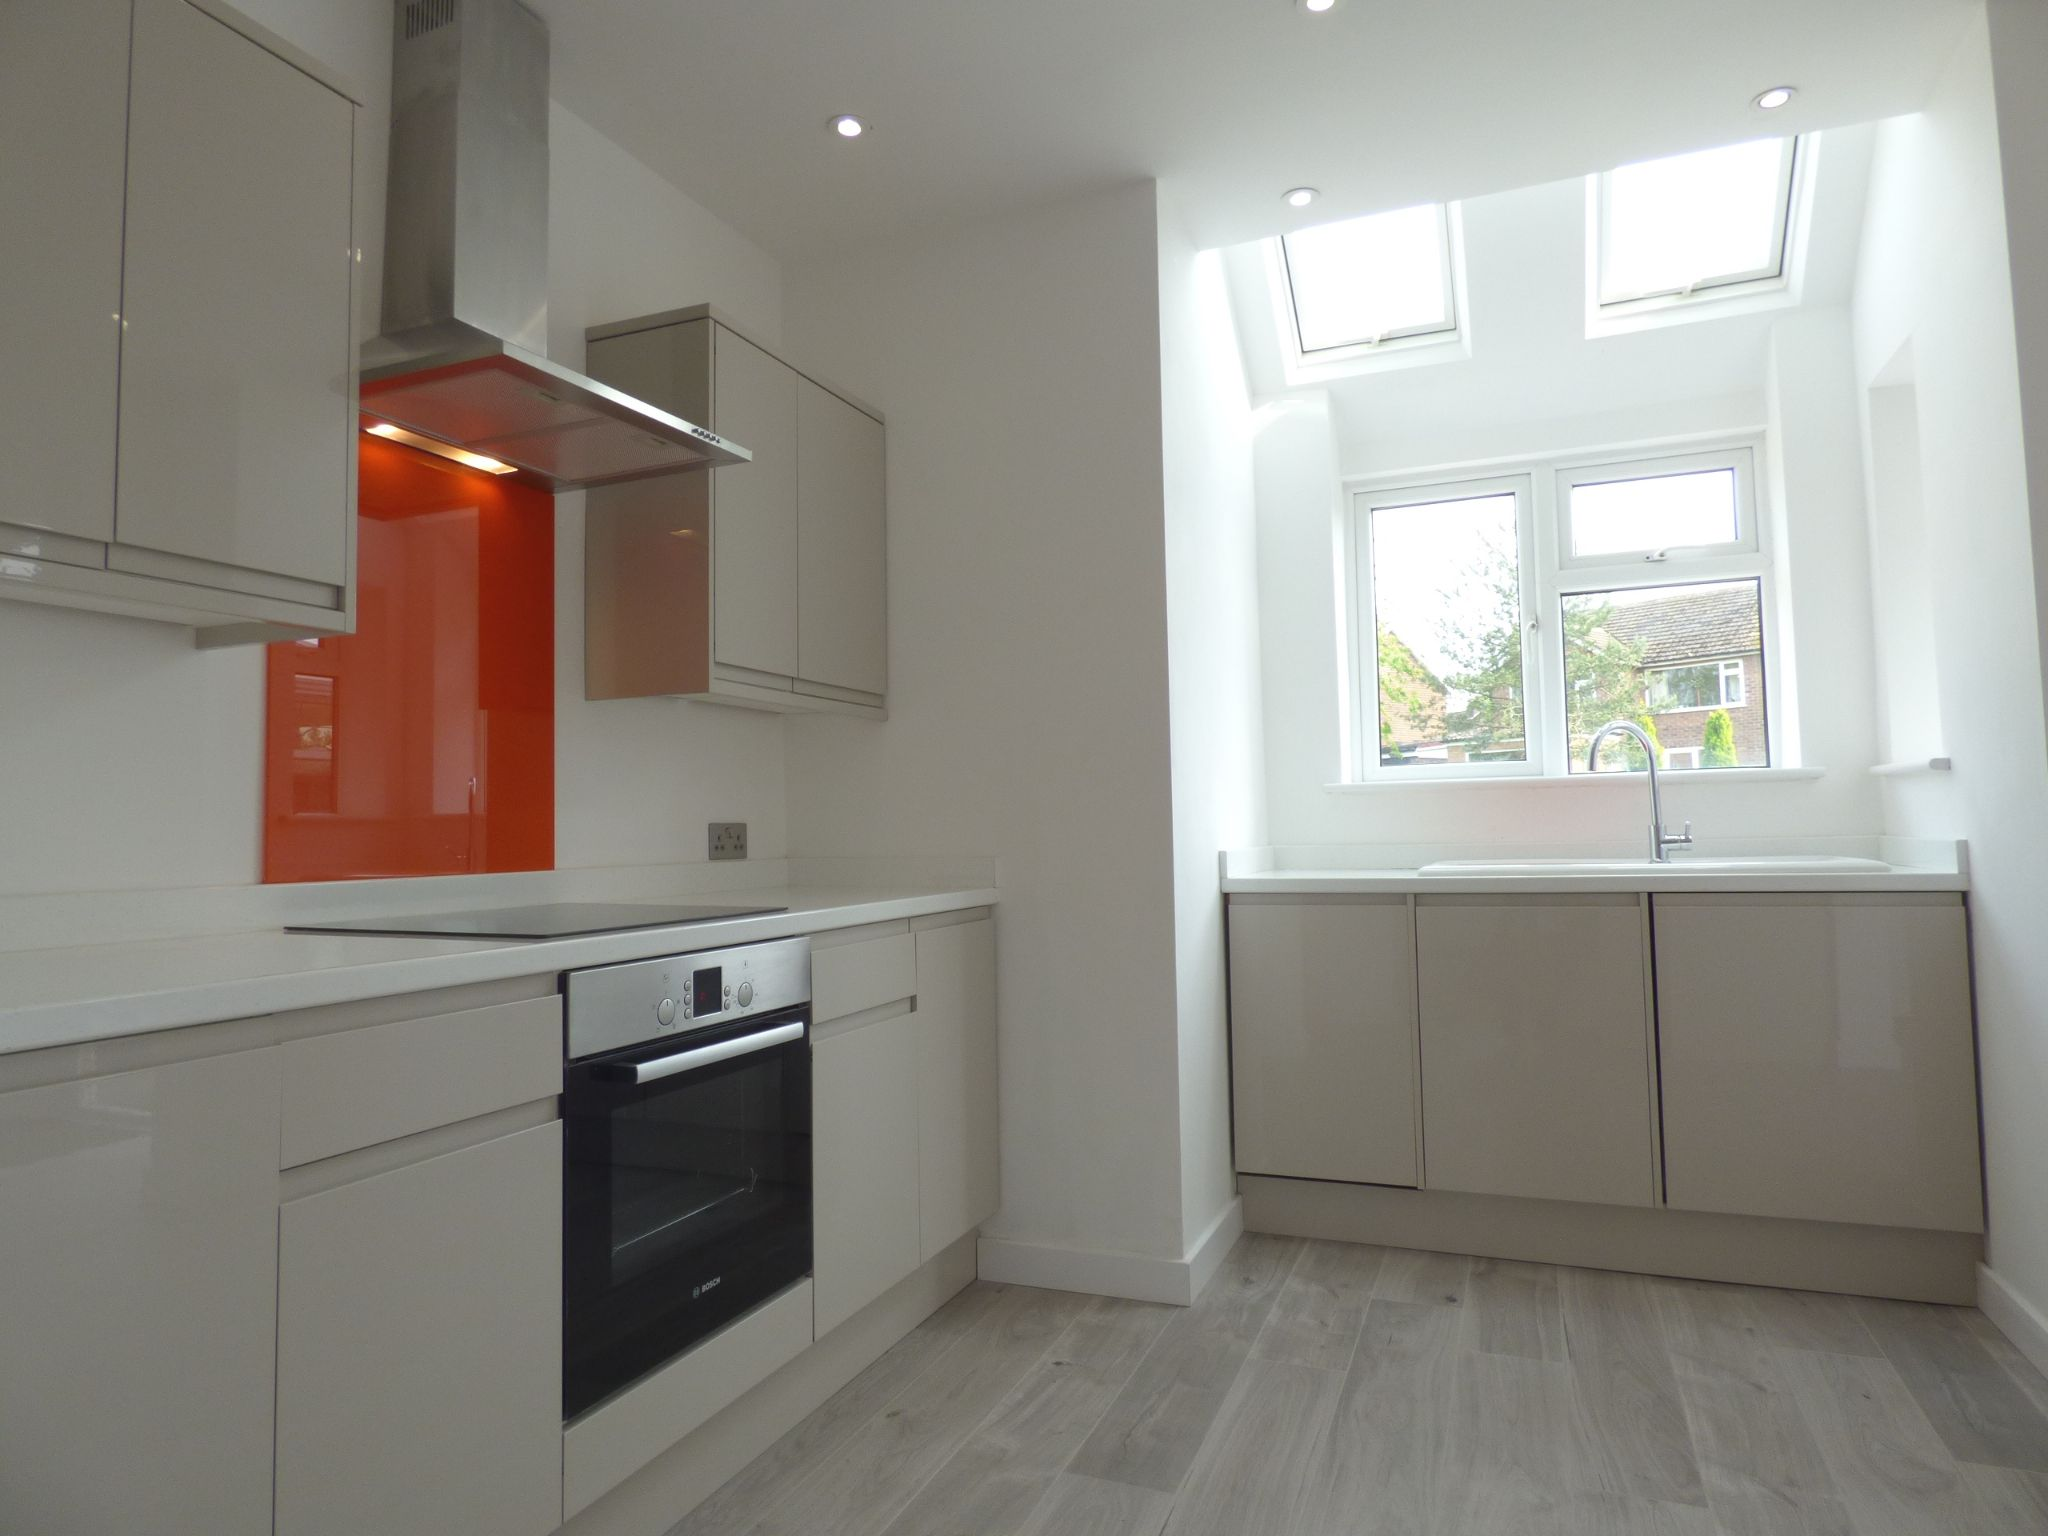 3 Bedroom Semi-detached House For Sale - Kitchen 4